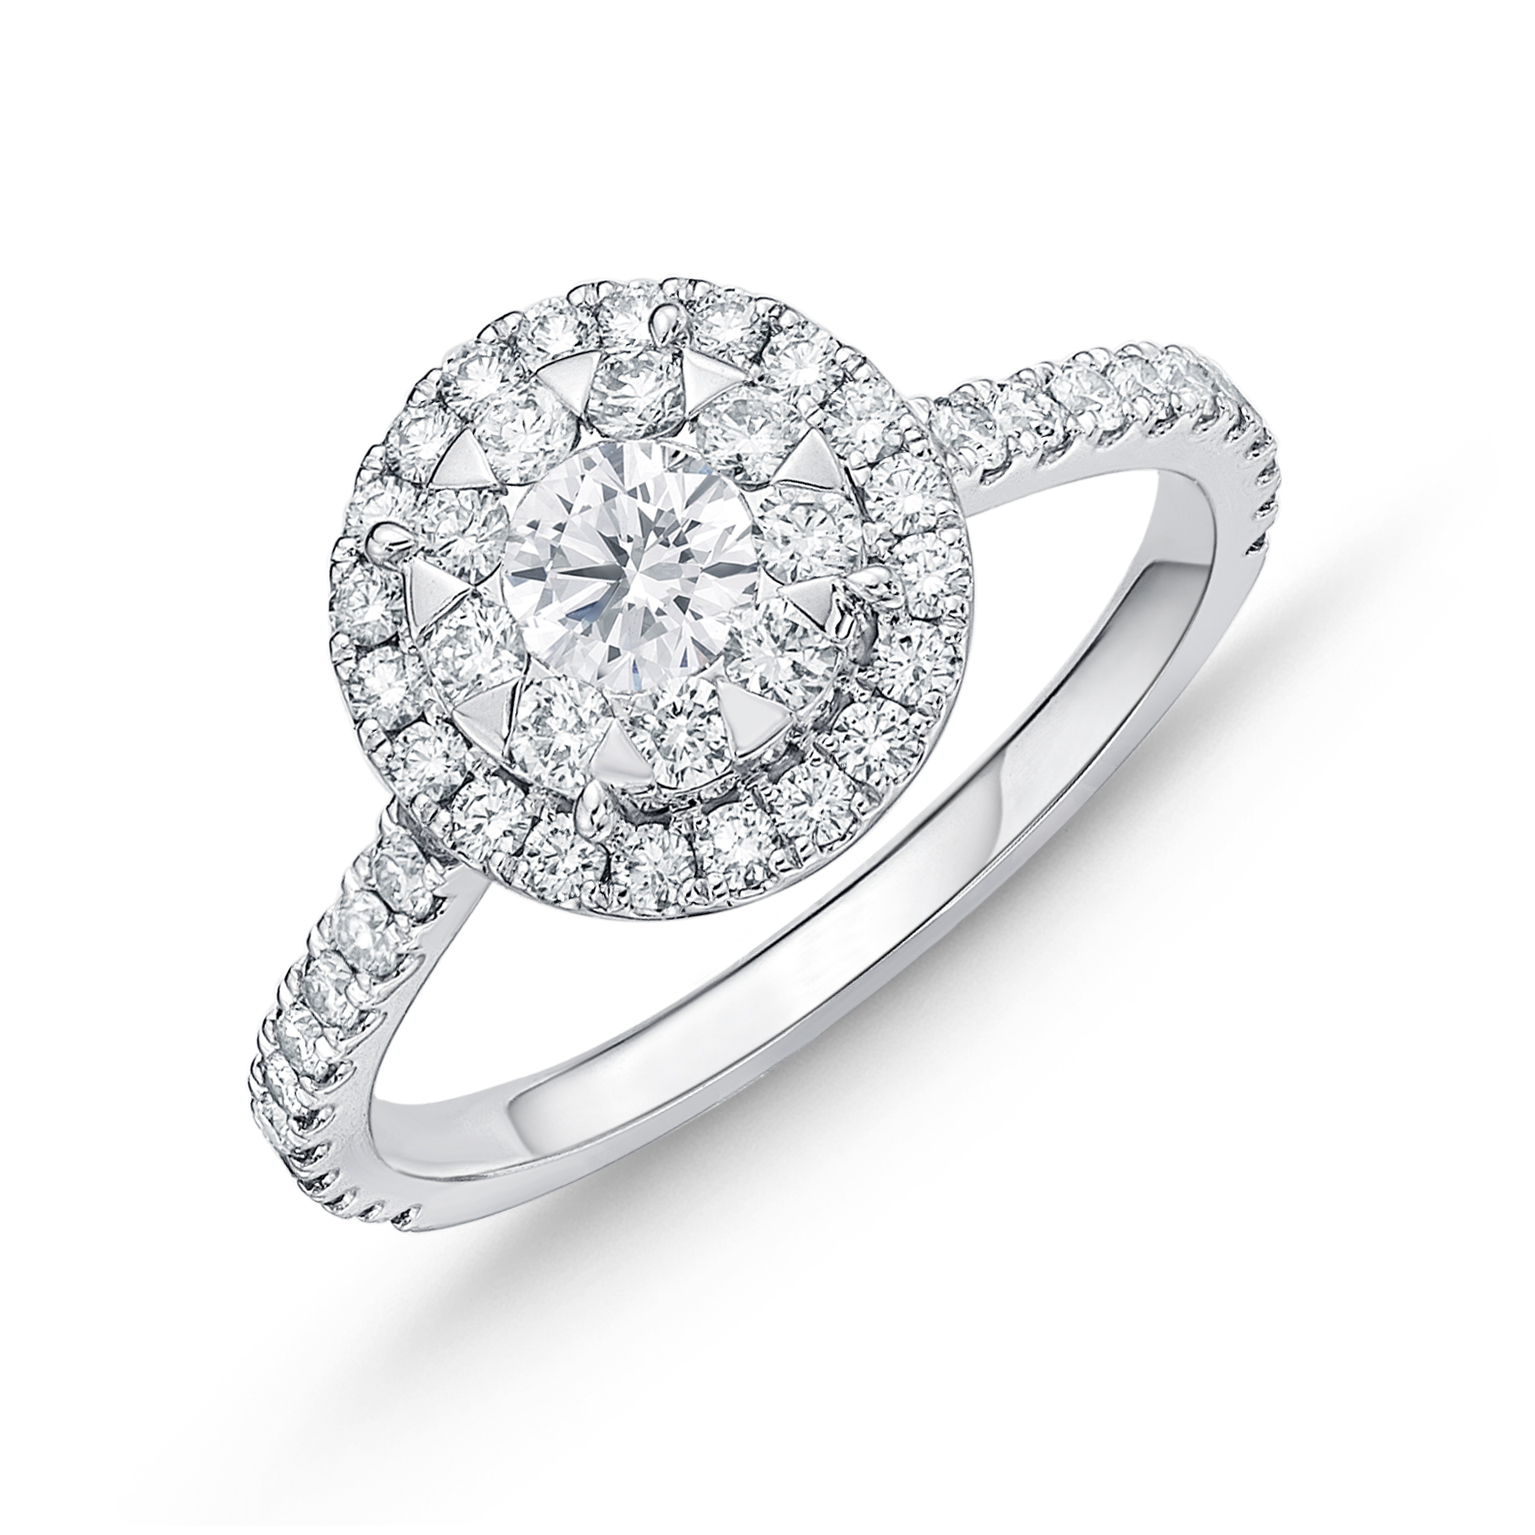 Memoire 18ct White Gold 0.90 Carat Diamond Bouquet Halo Solitaire Ring